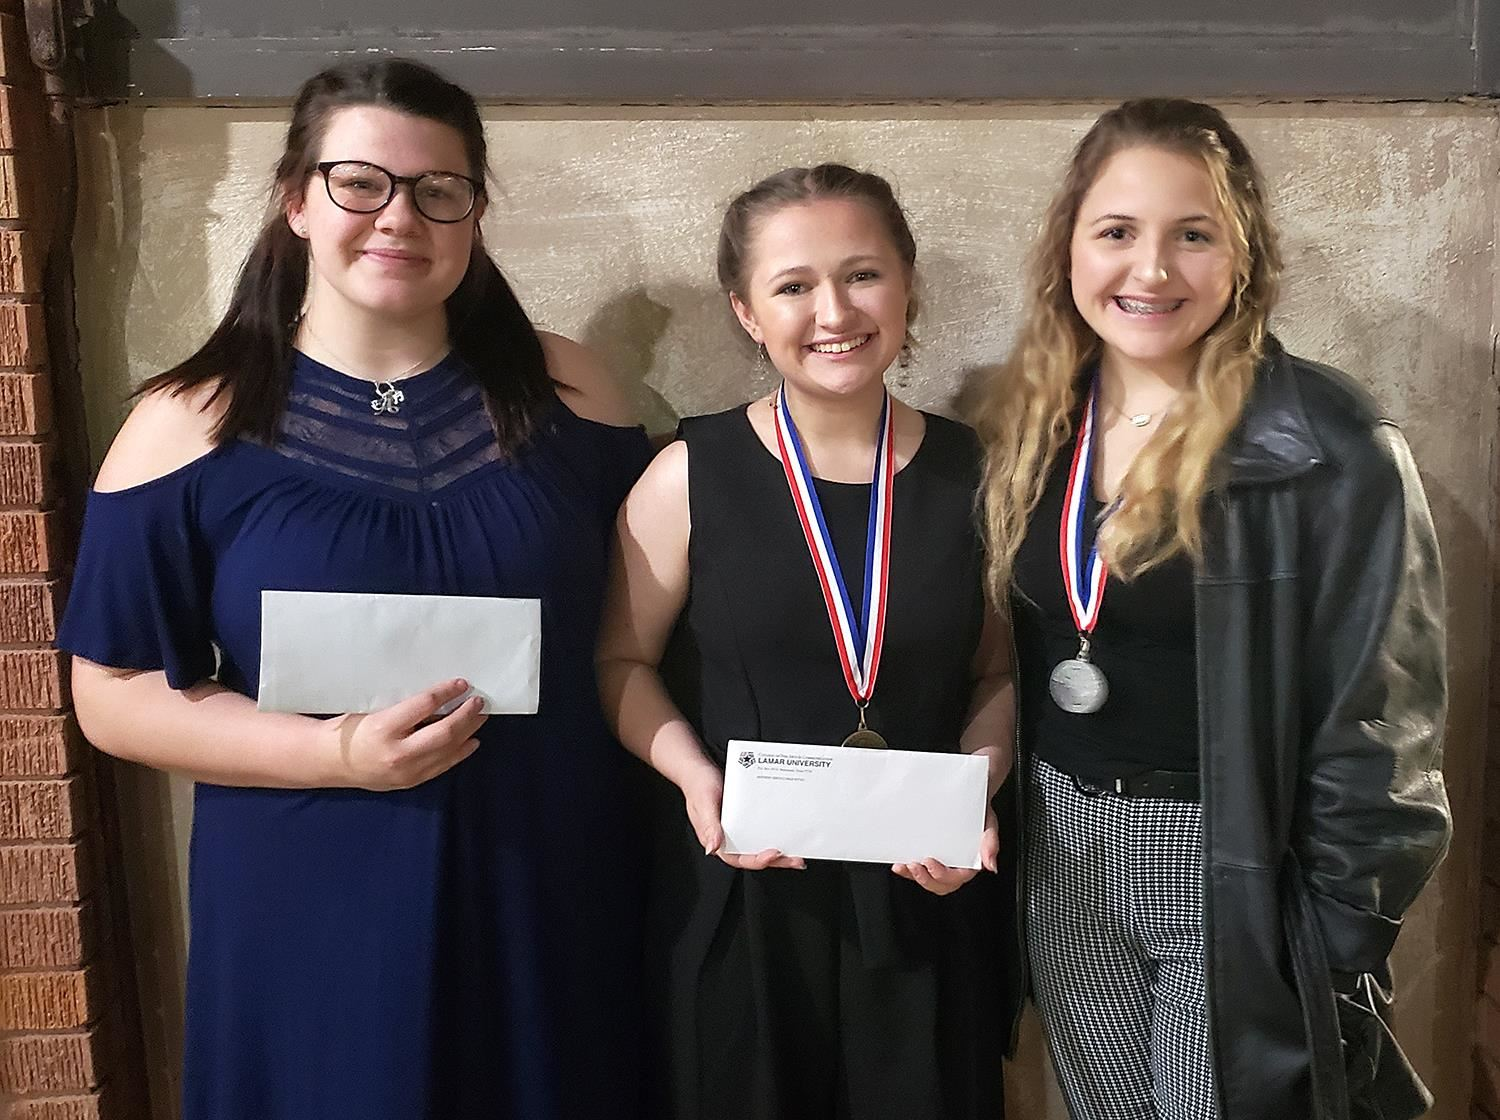 One-Act Play winners